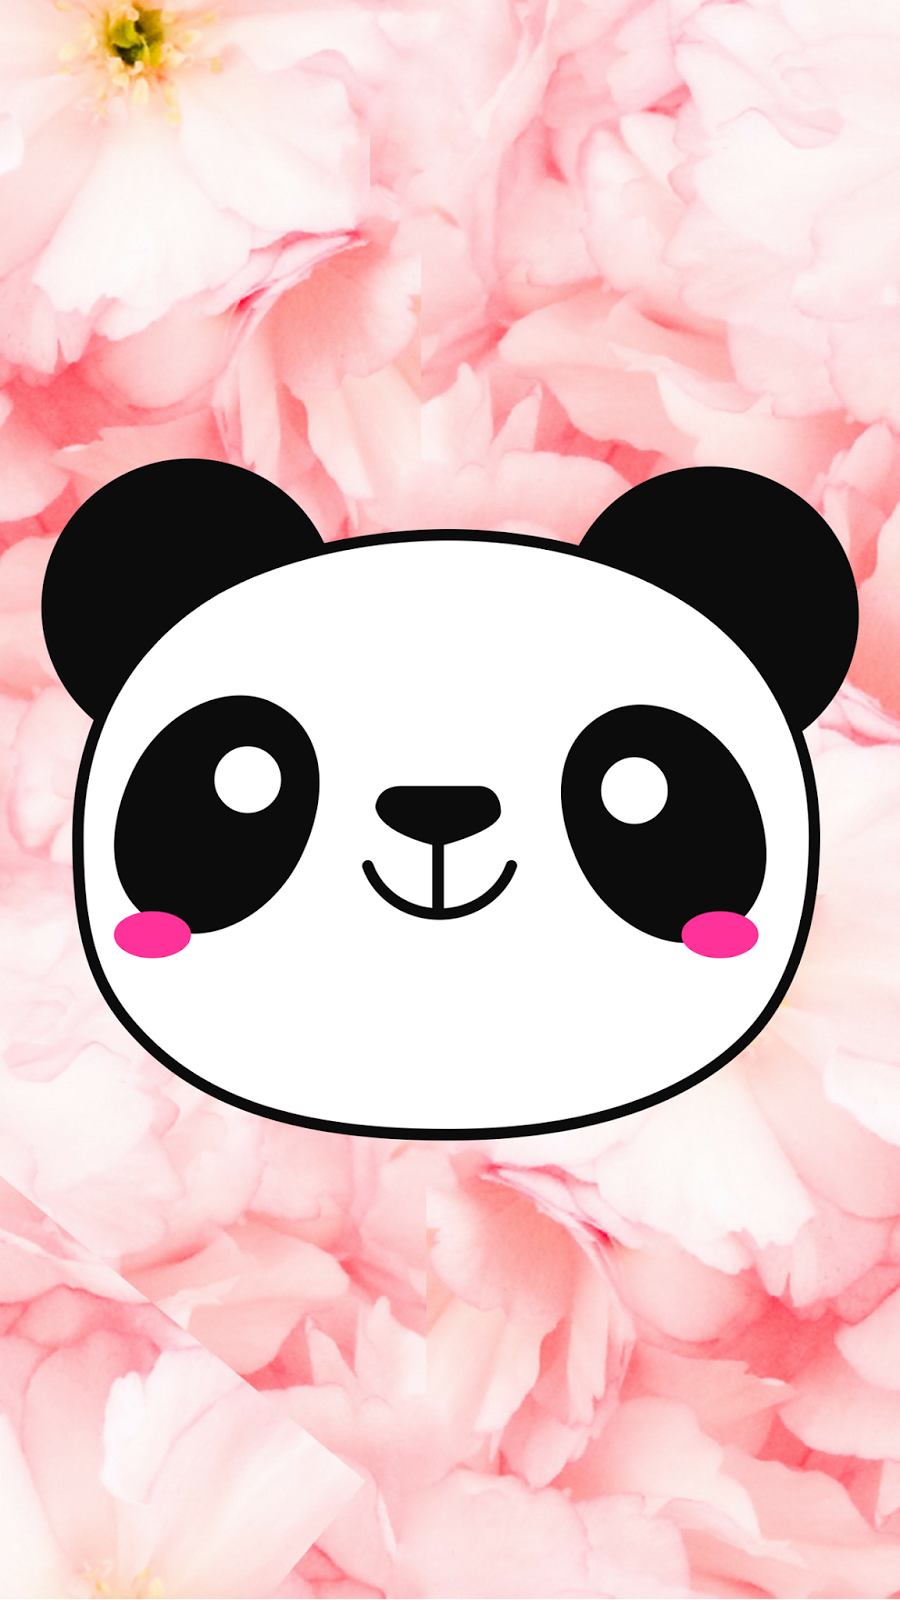 I Blog About Stuff Xo Wallpaper Panda Wallpapers Cute Panda Wallpaper Cute Panda